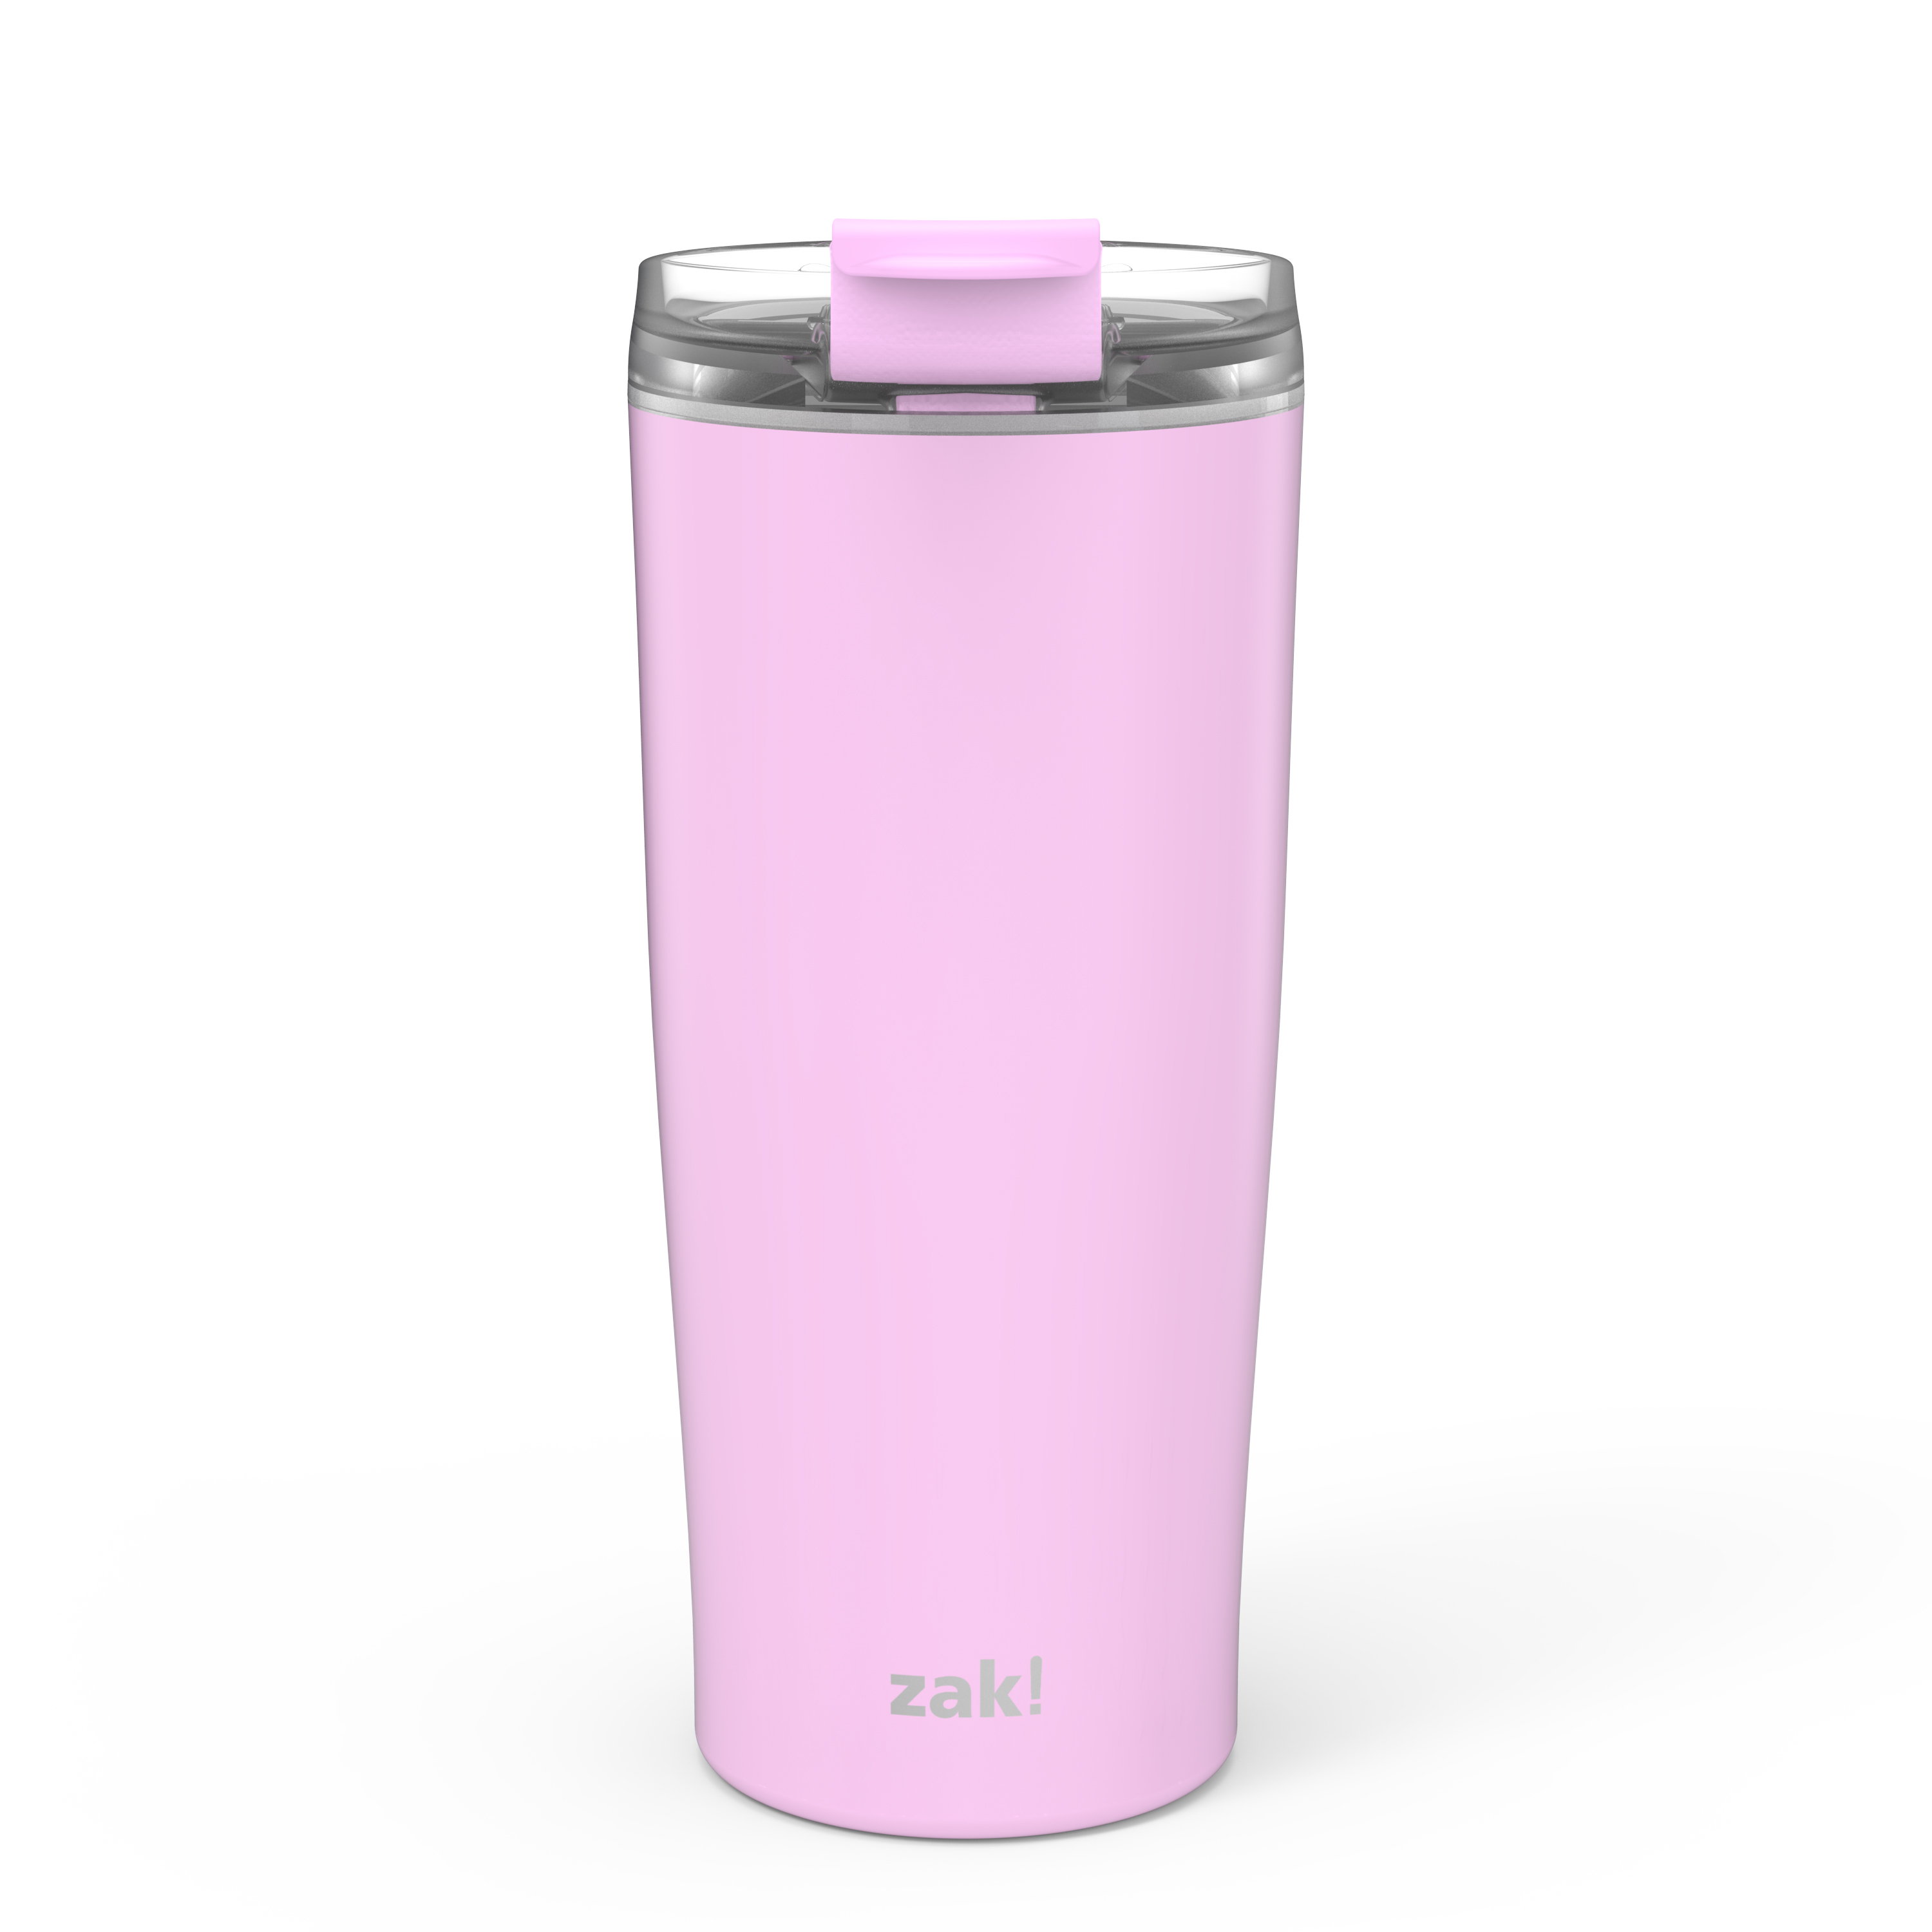 Aberdeen 20 ounce Vacuum Insulated Stainless Steel Tumbler, Lilac slideshow image 2